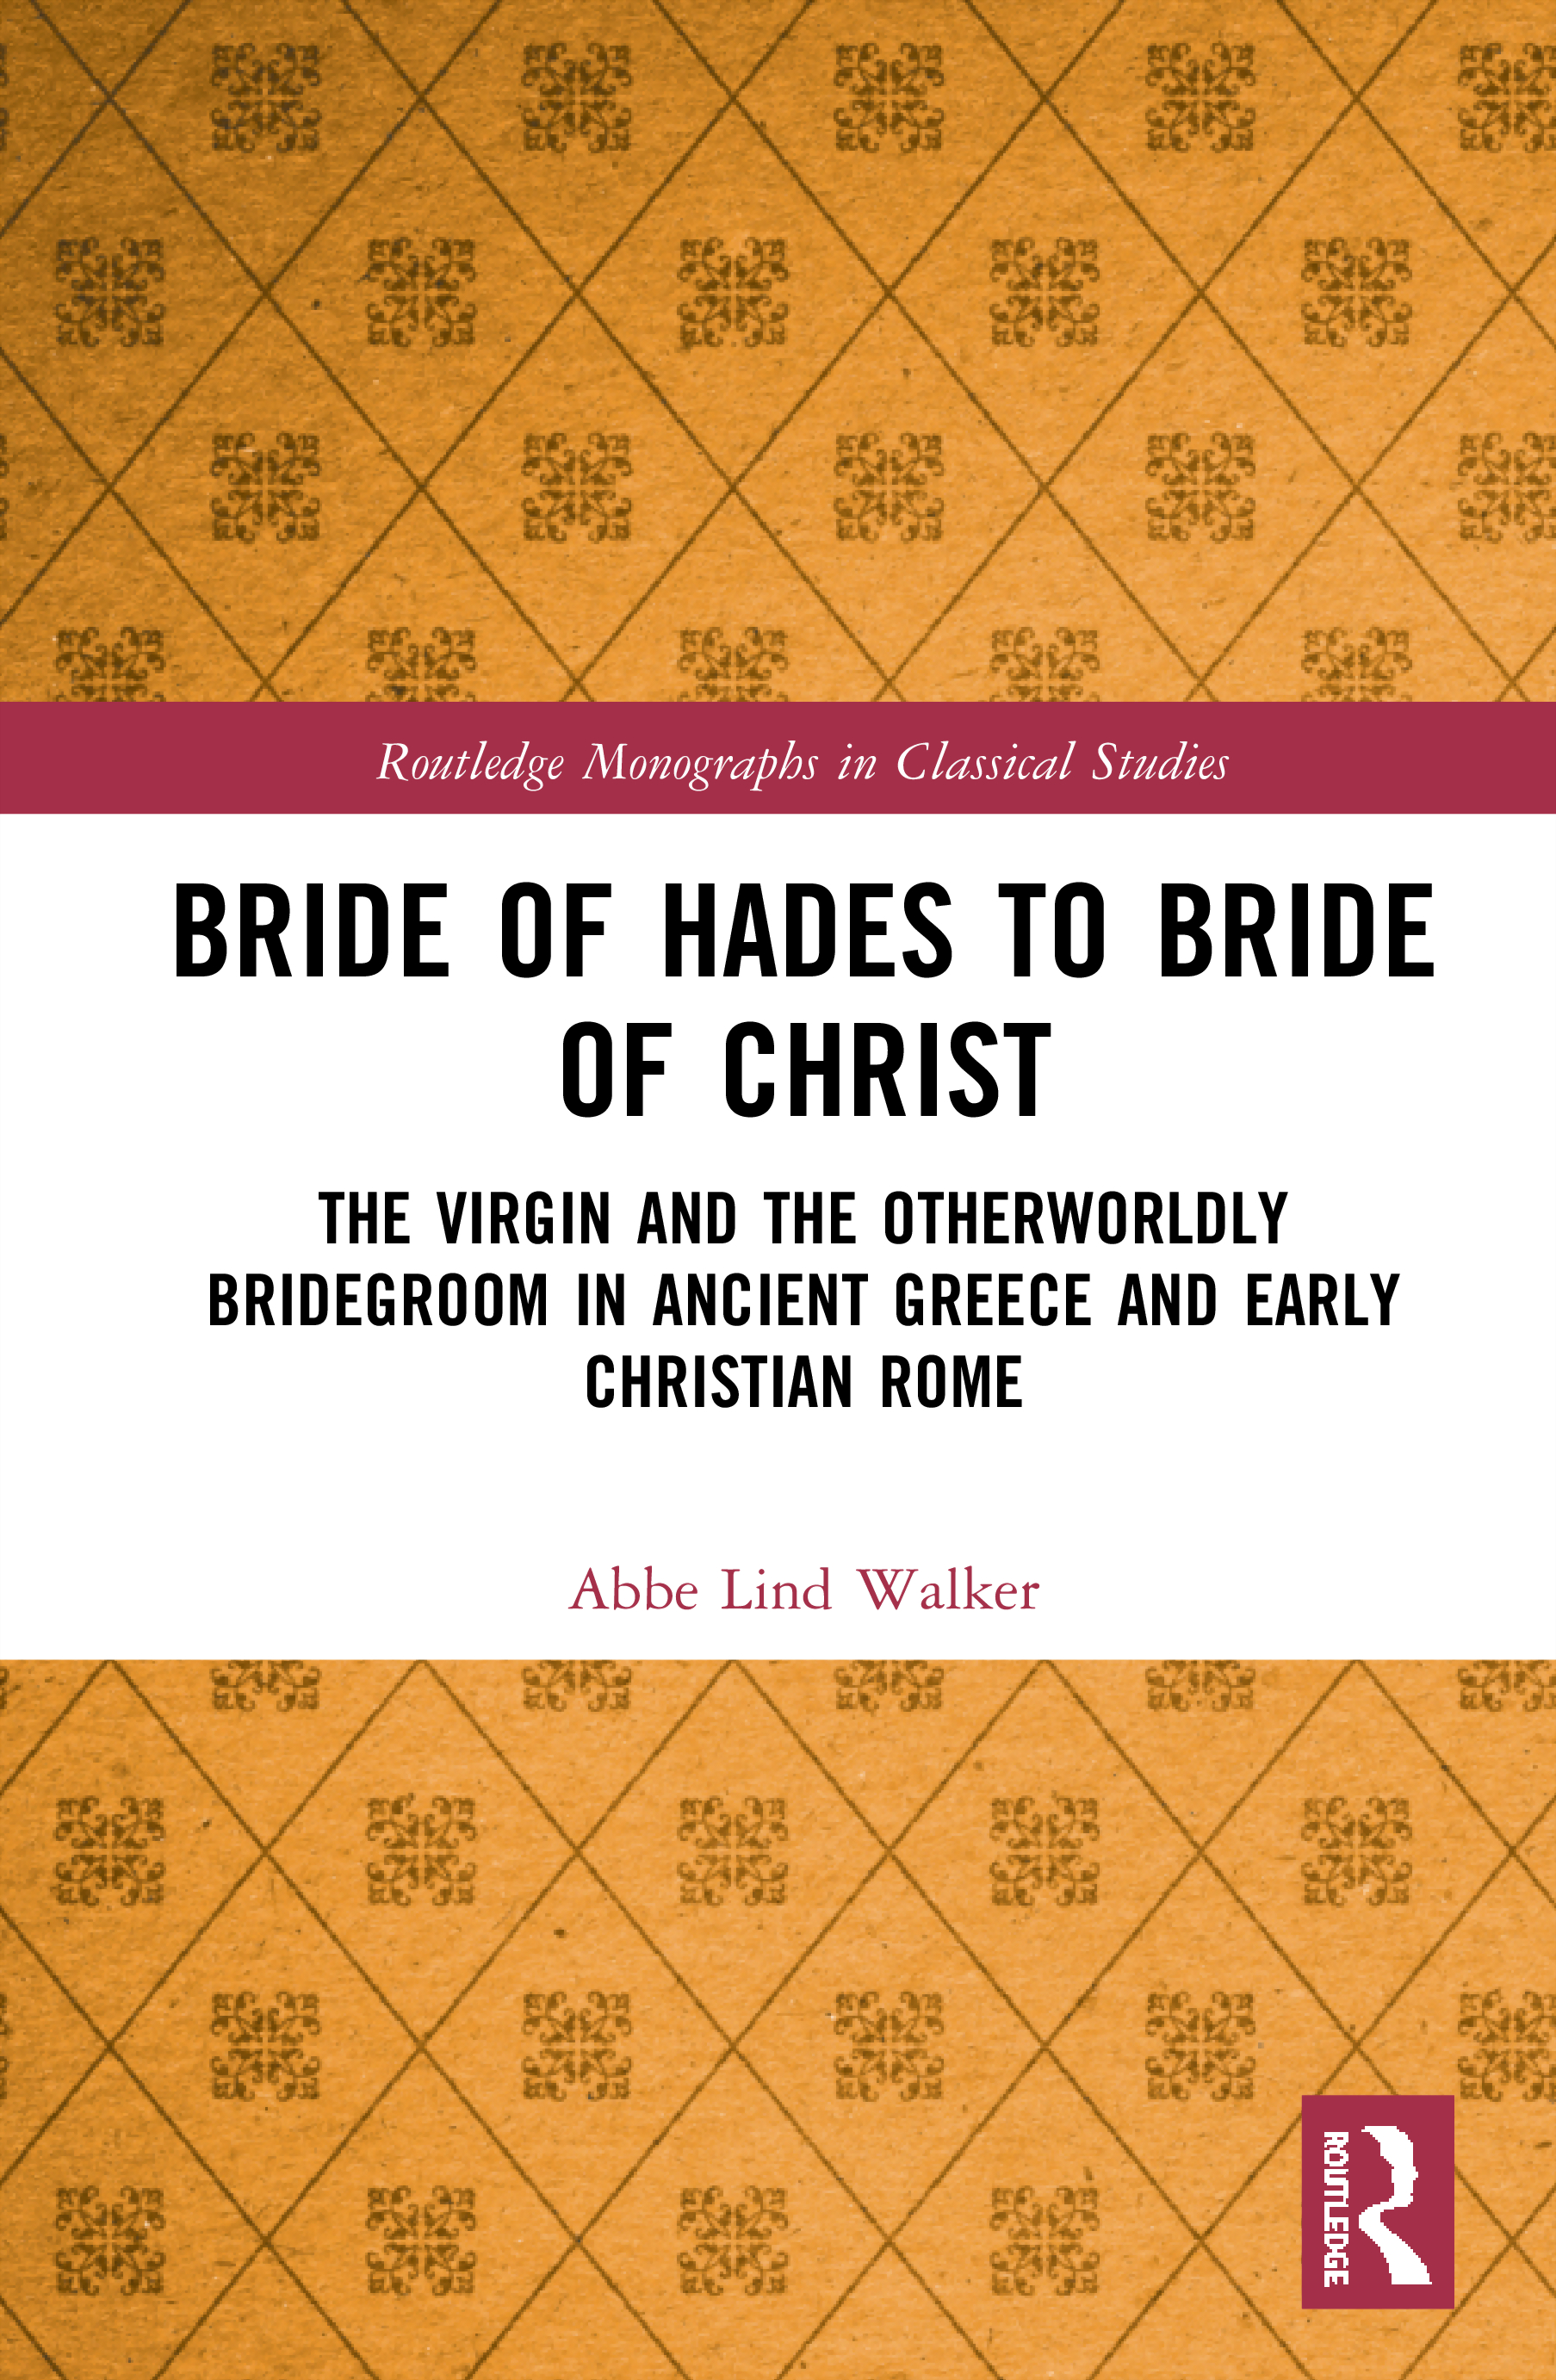 Bride of Hades to Bride of Christ: The Virgin and the Otherworldly Bridegroom in Ancient Greece and Early Christian Rome book cover